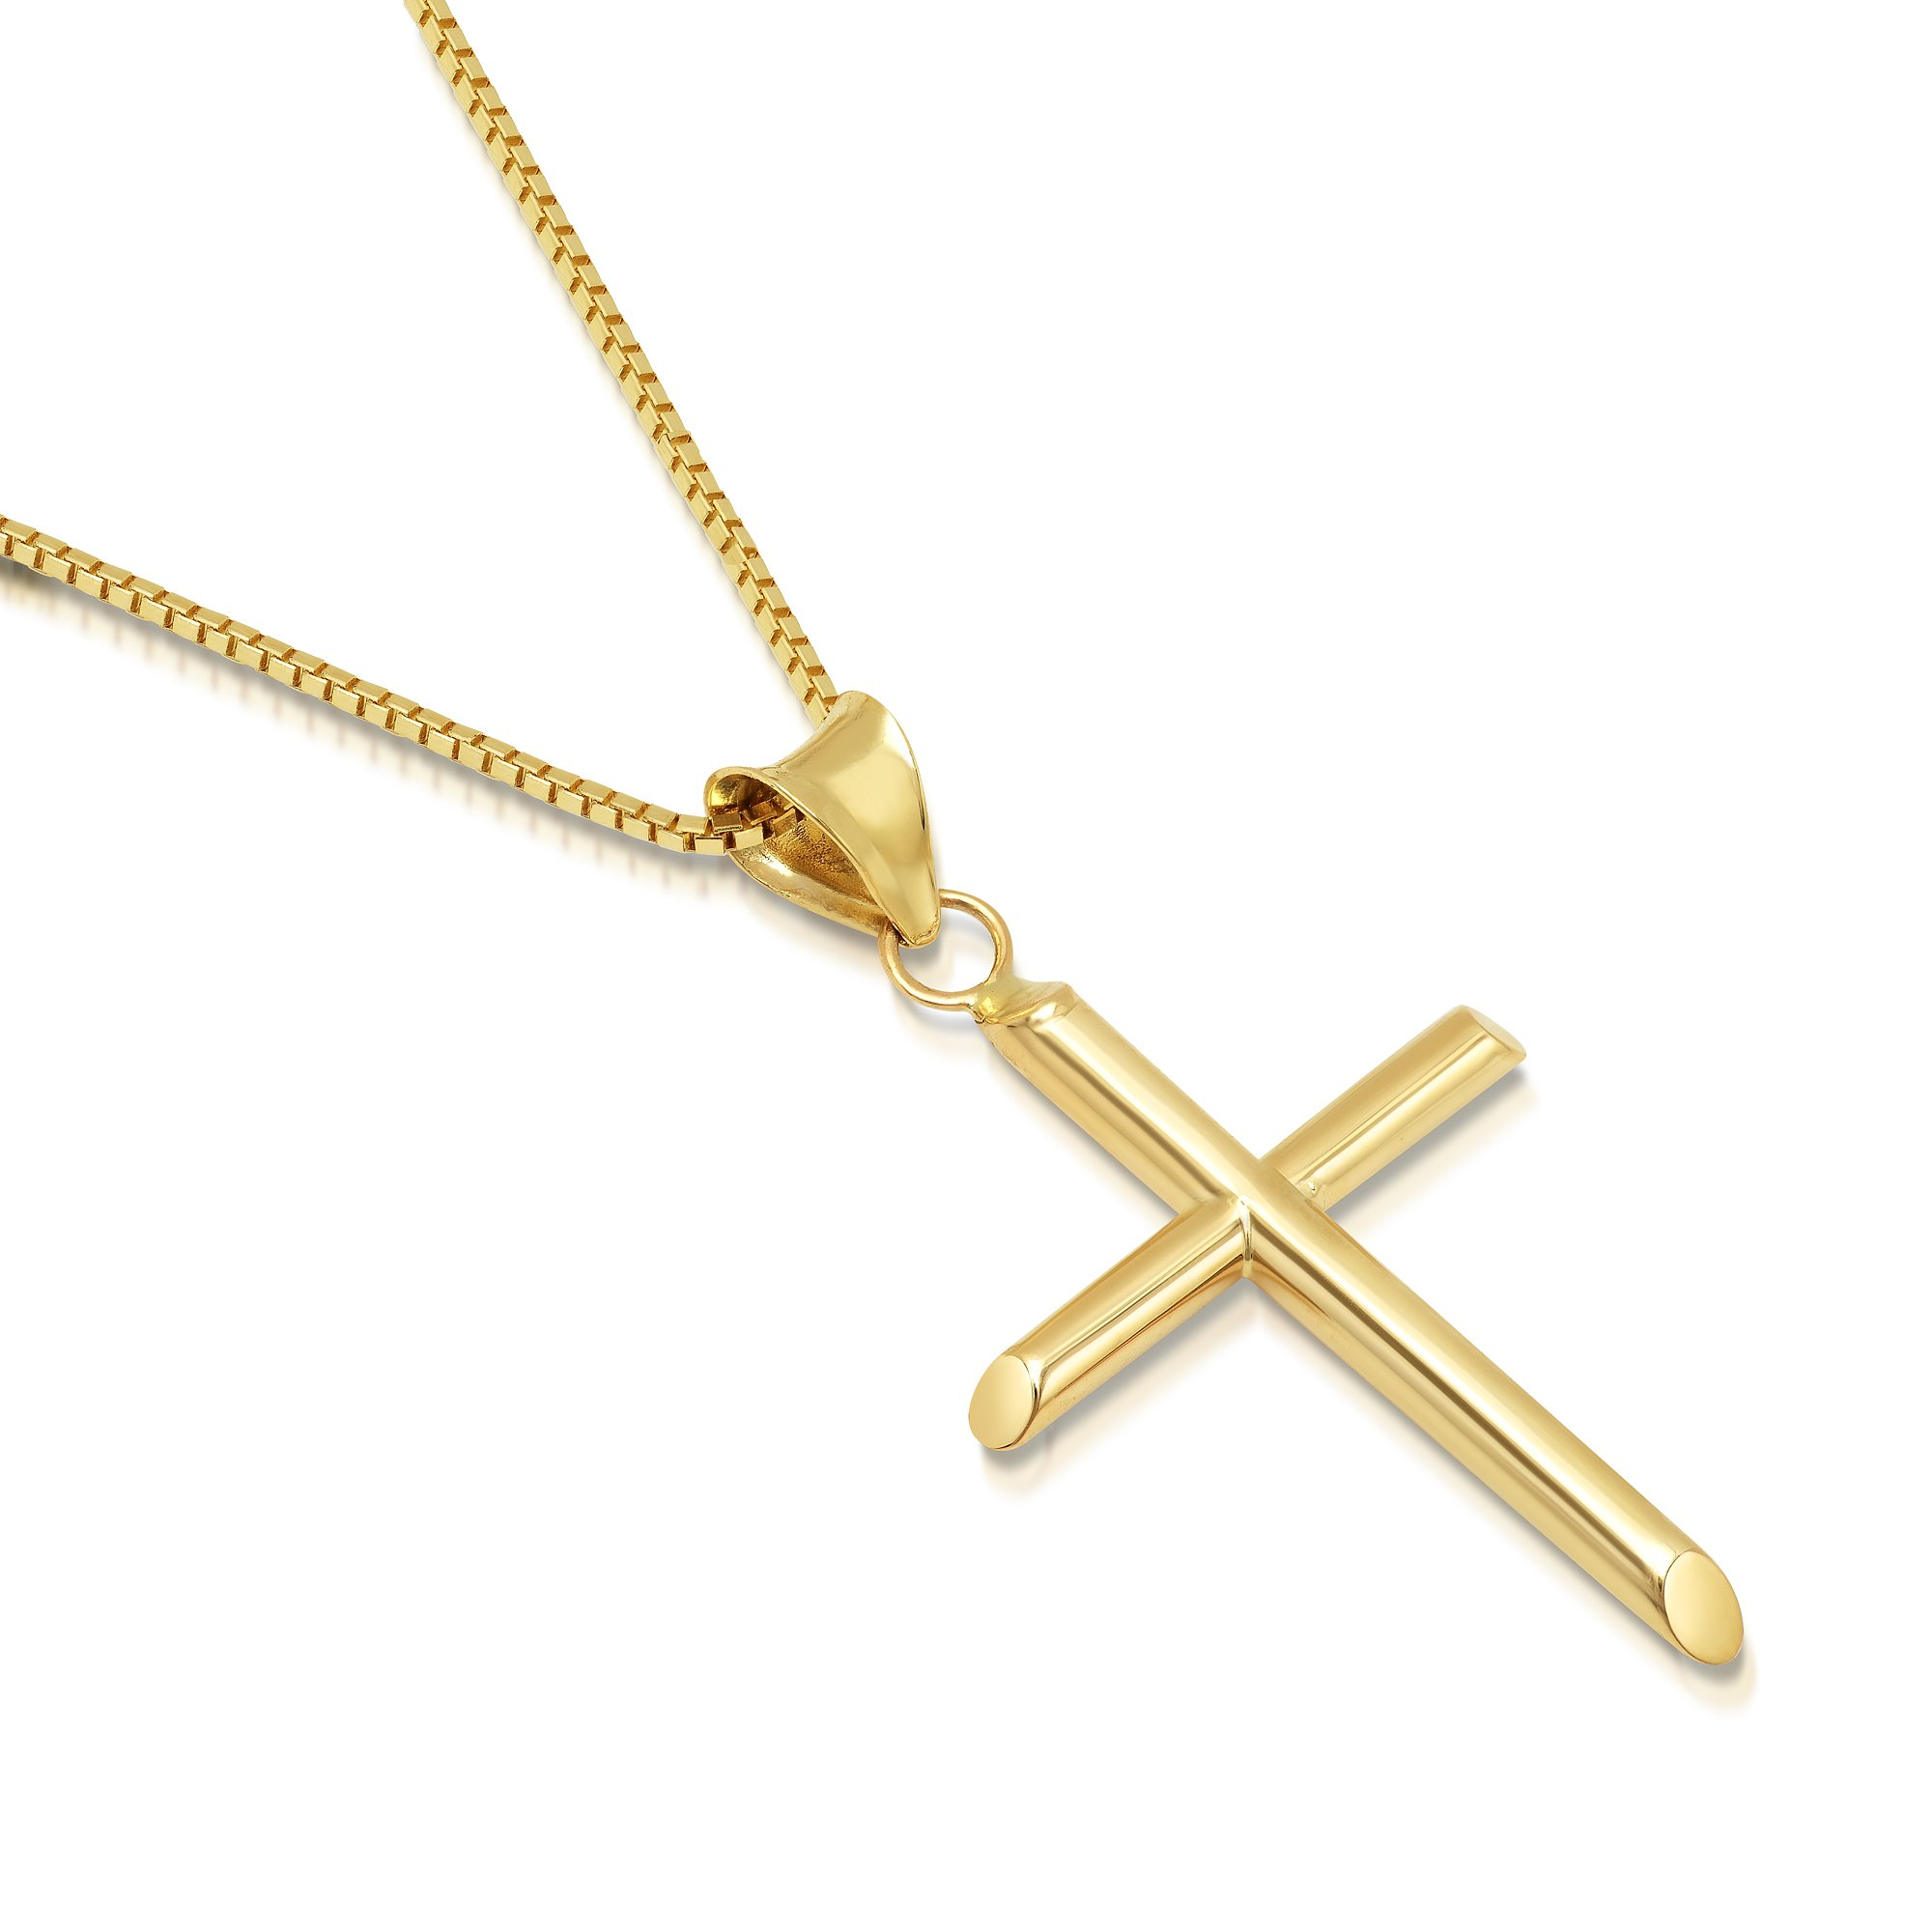 DTLA Solid 14K Gold Box Chain Cross Pendant Necklace - 20'' - 1.0mm